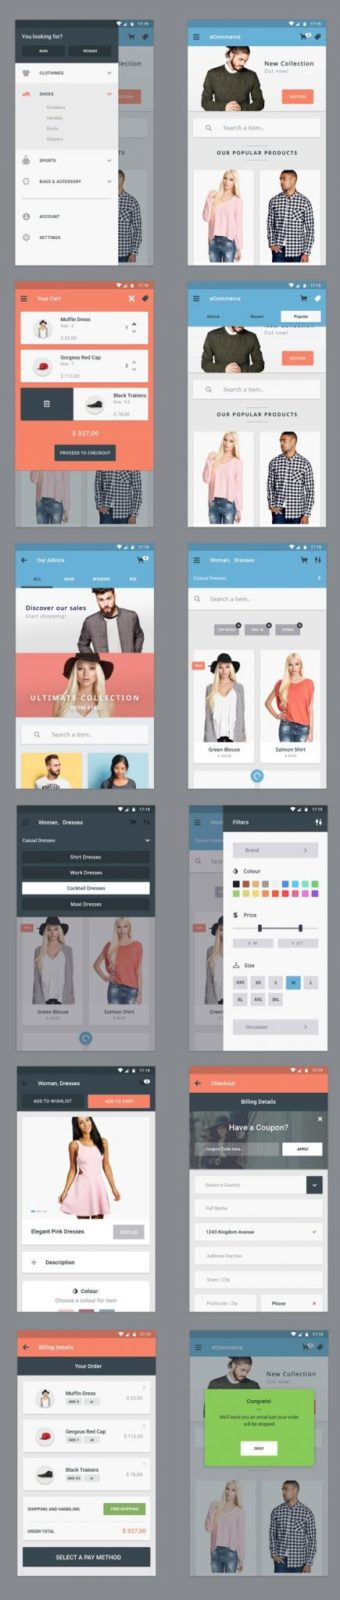 Free Ecommerce App UI Designs For App Developers